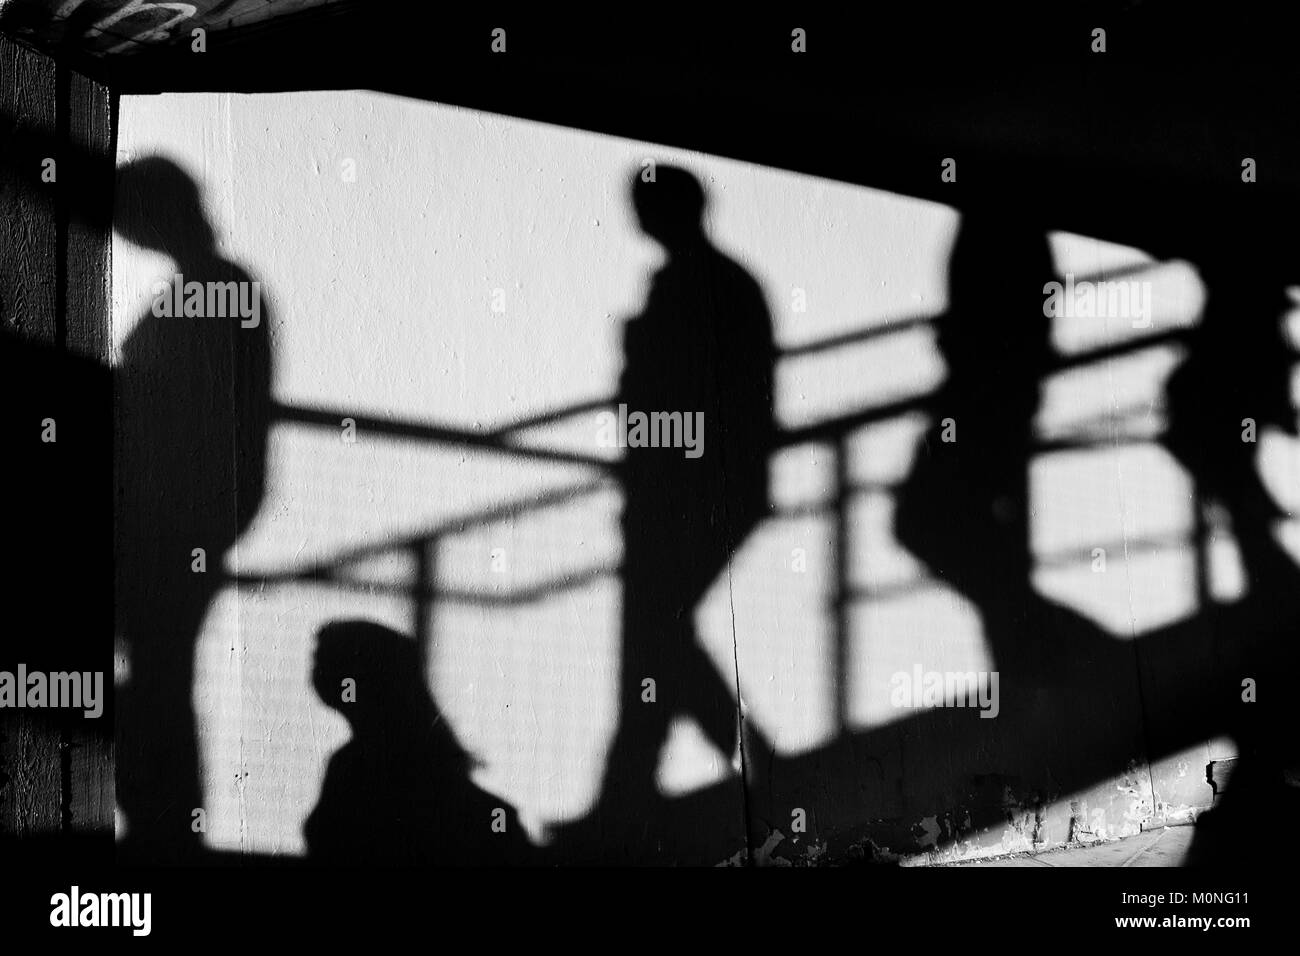 London Black and white street photography: Shadows of people descending stairs. - Stock Image